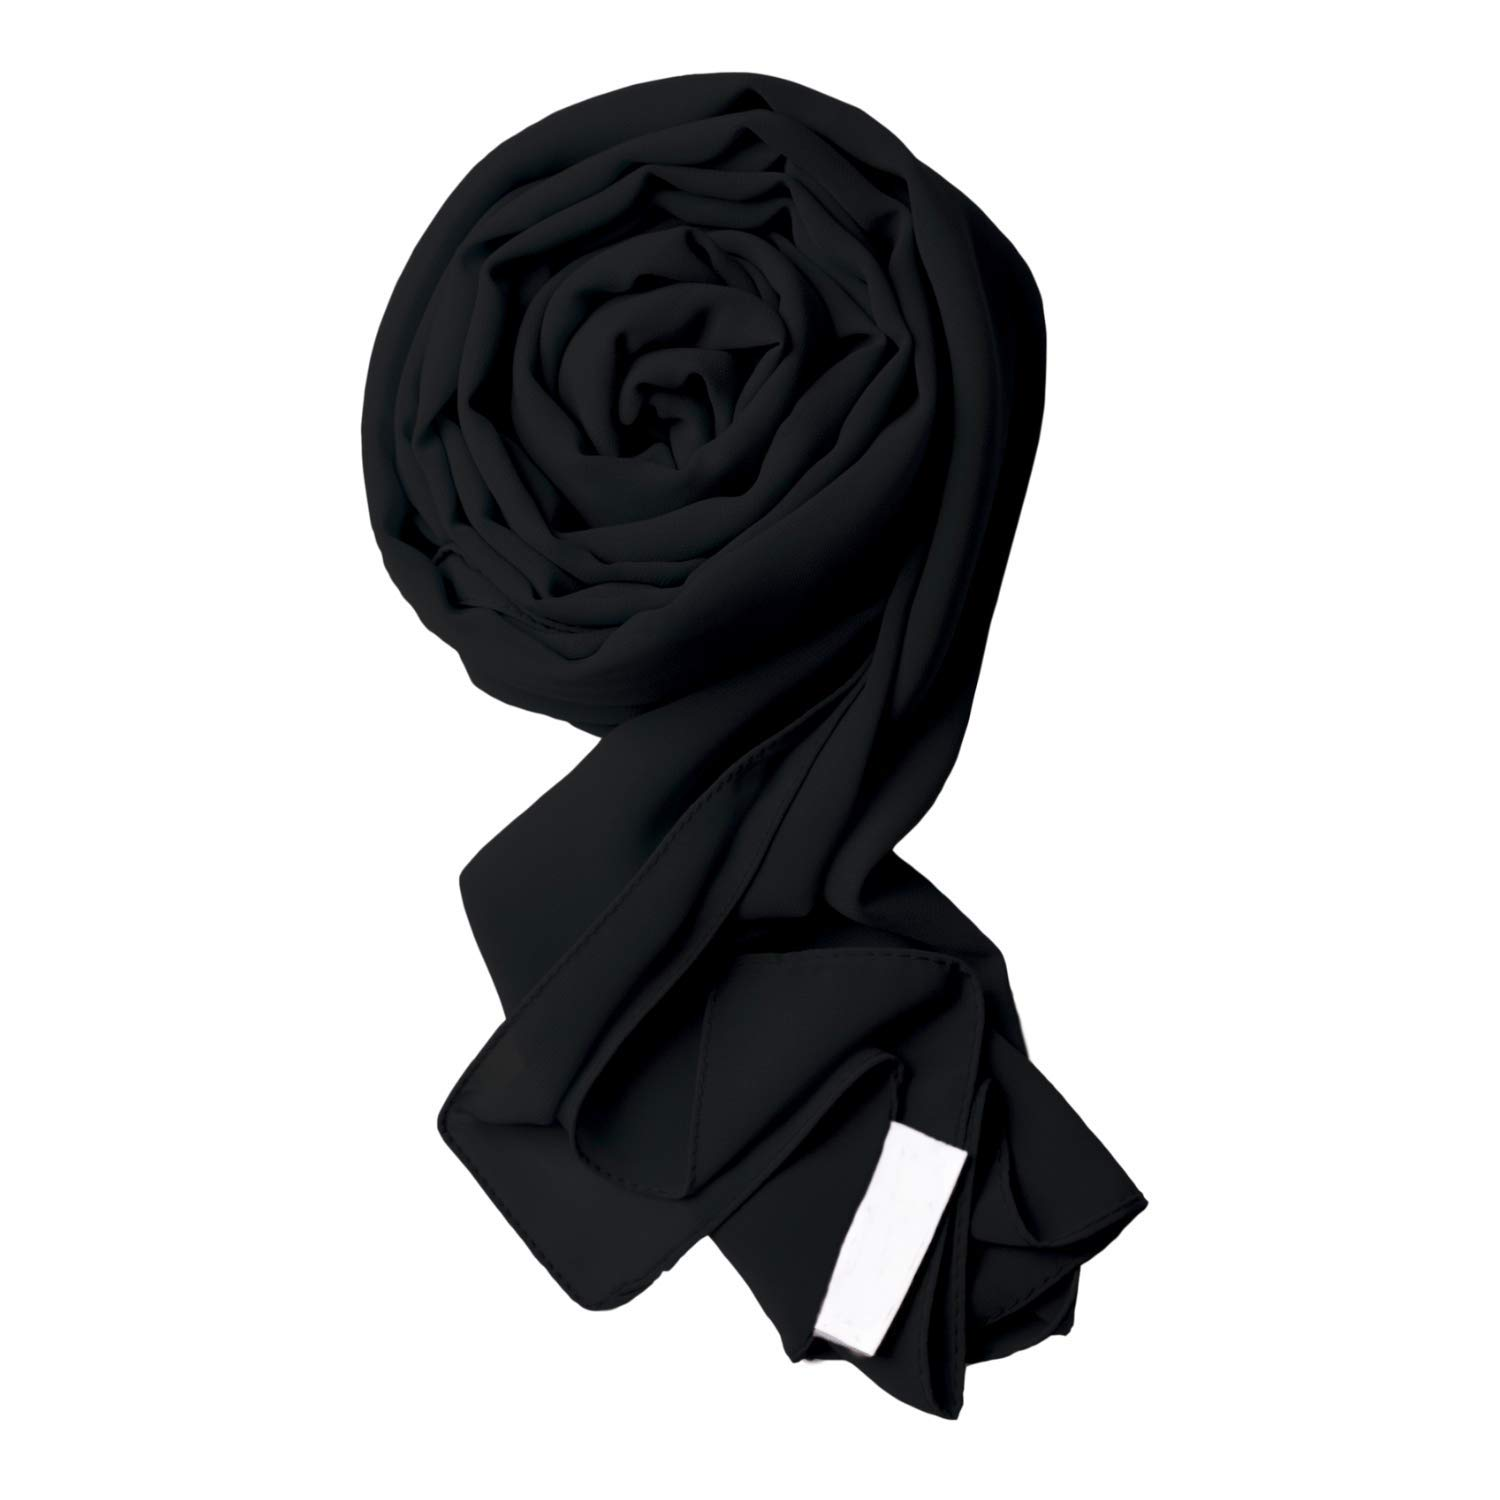 Voile Chic 8 Colors Black Premium Chiffon Wrap Head Scarf (Non-Slip) by Voile Chic